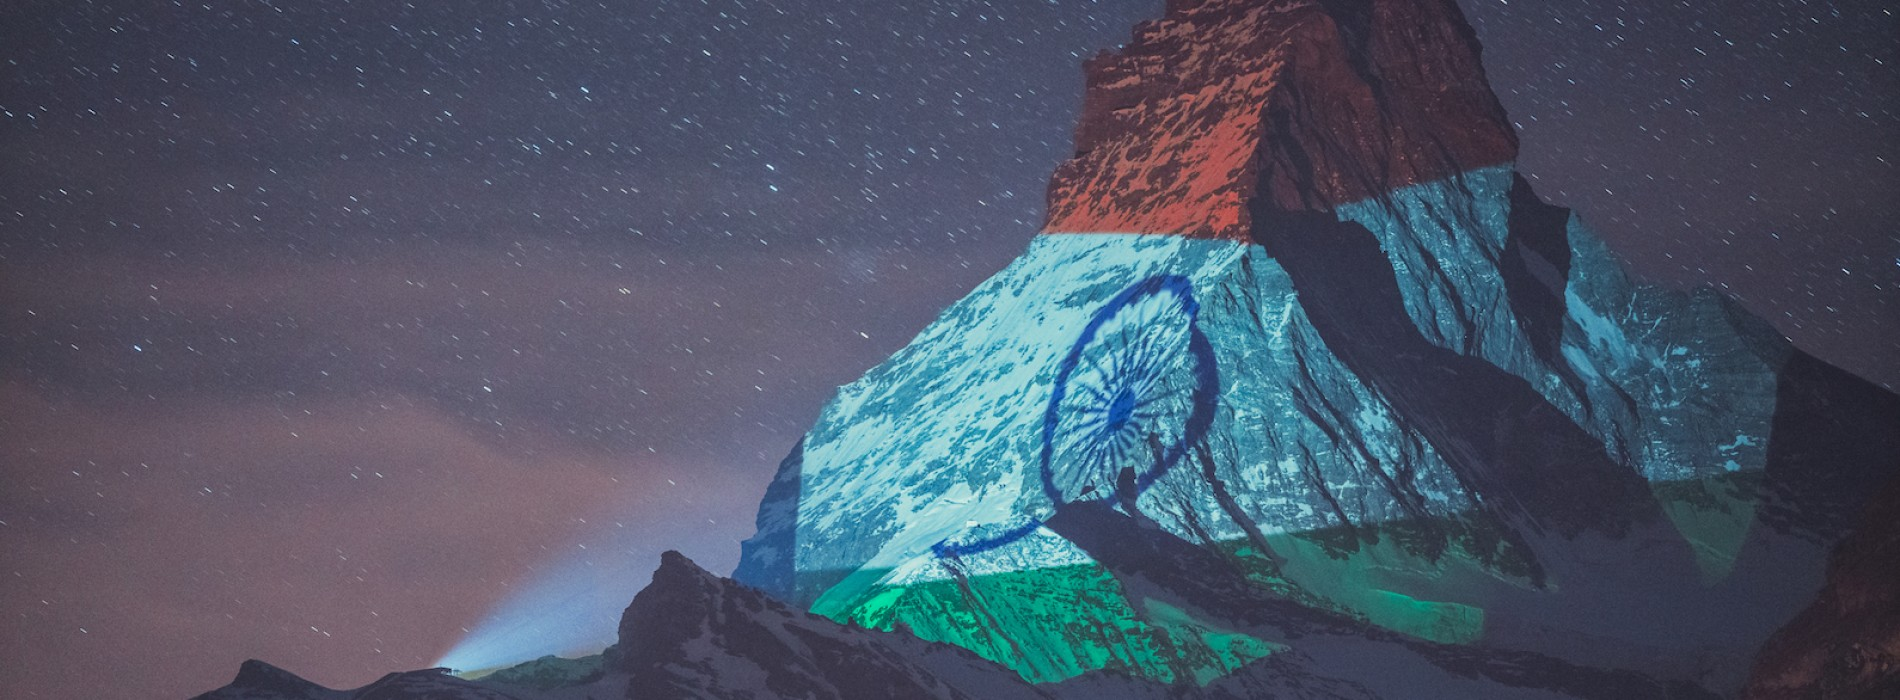 Indian flag projected onto Matterhorn in Zermatt to show solidarity against coronavirus